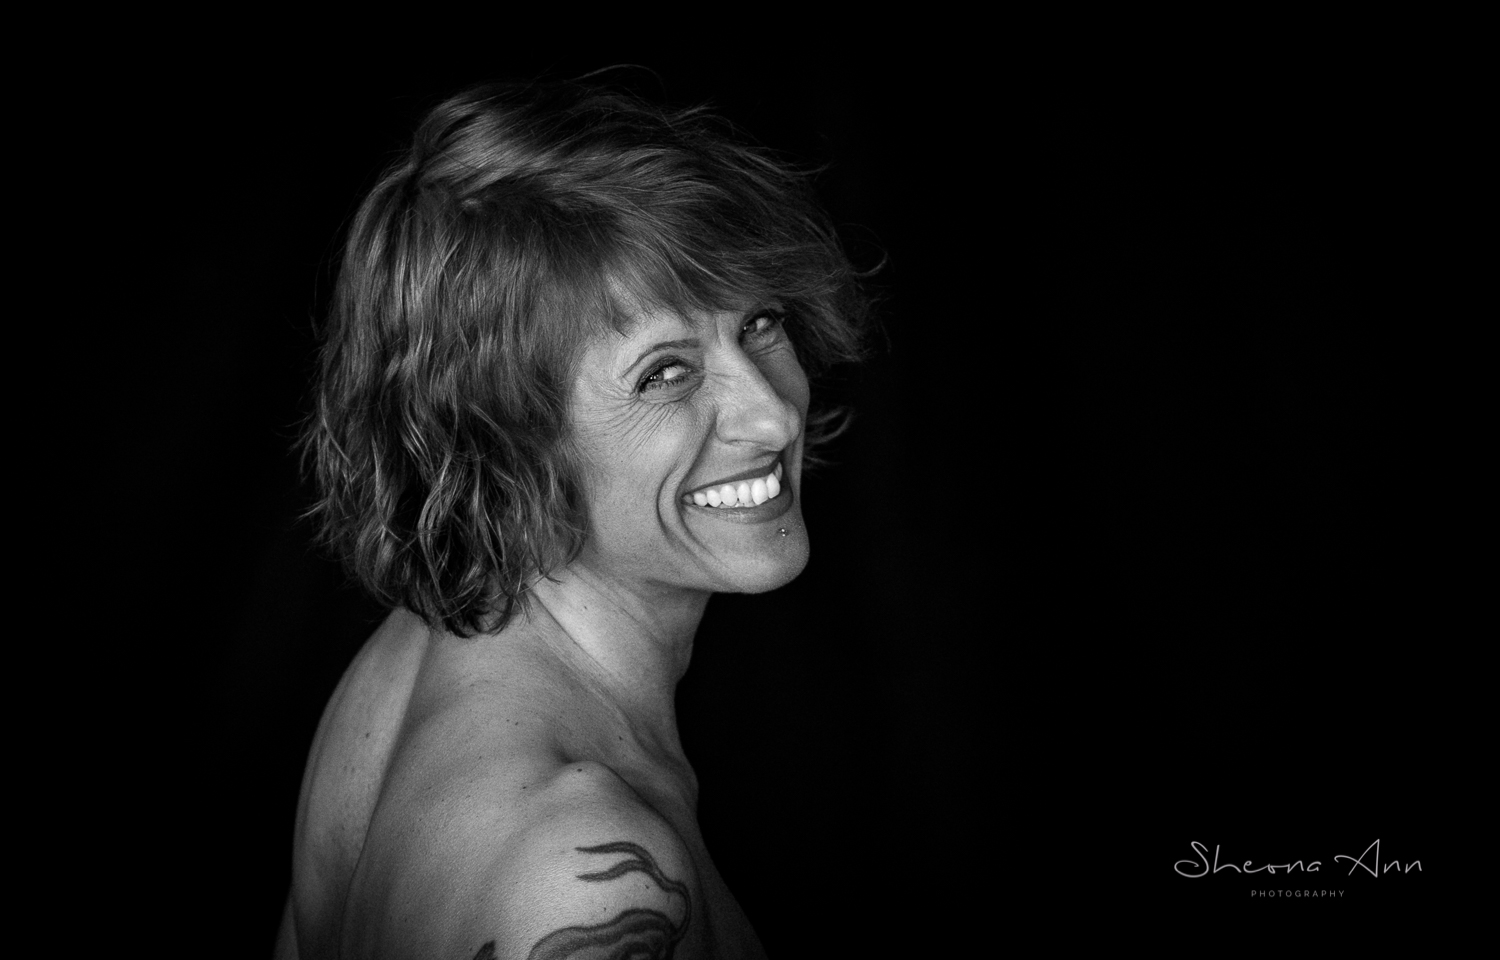 Vanessa-Bora-yoga-bw-Sheona-Ann-Photography (34 of 41).jpg